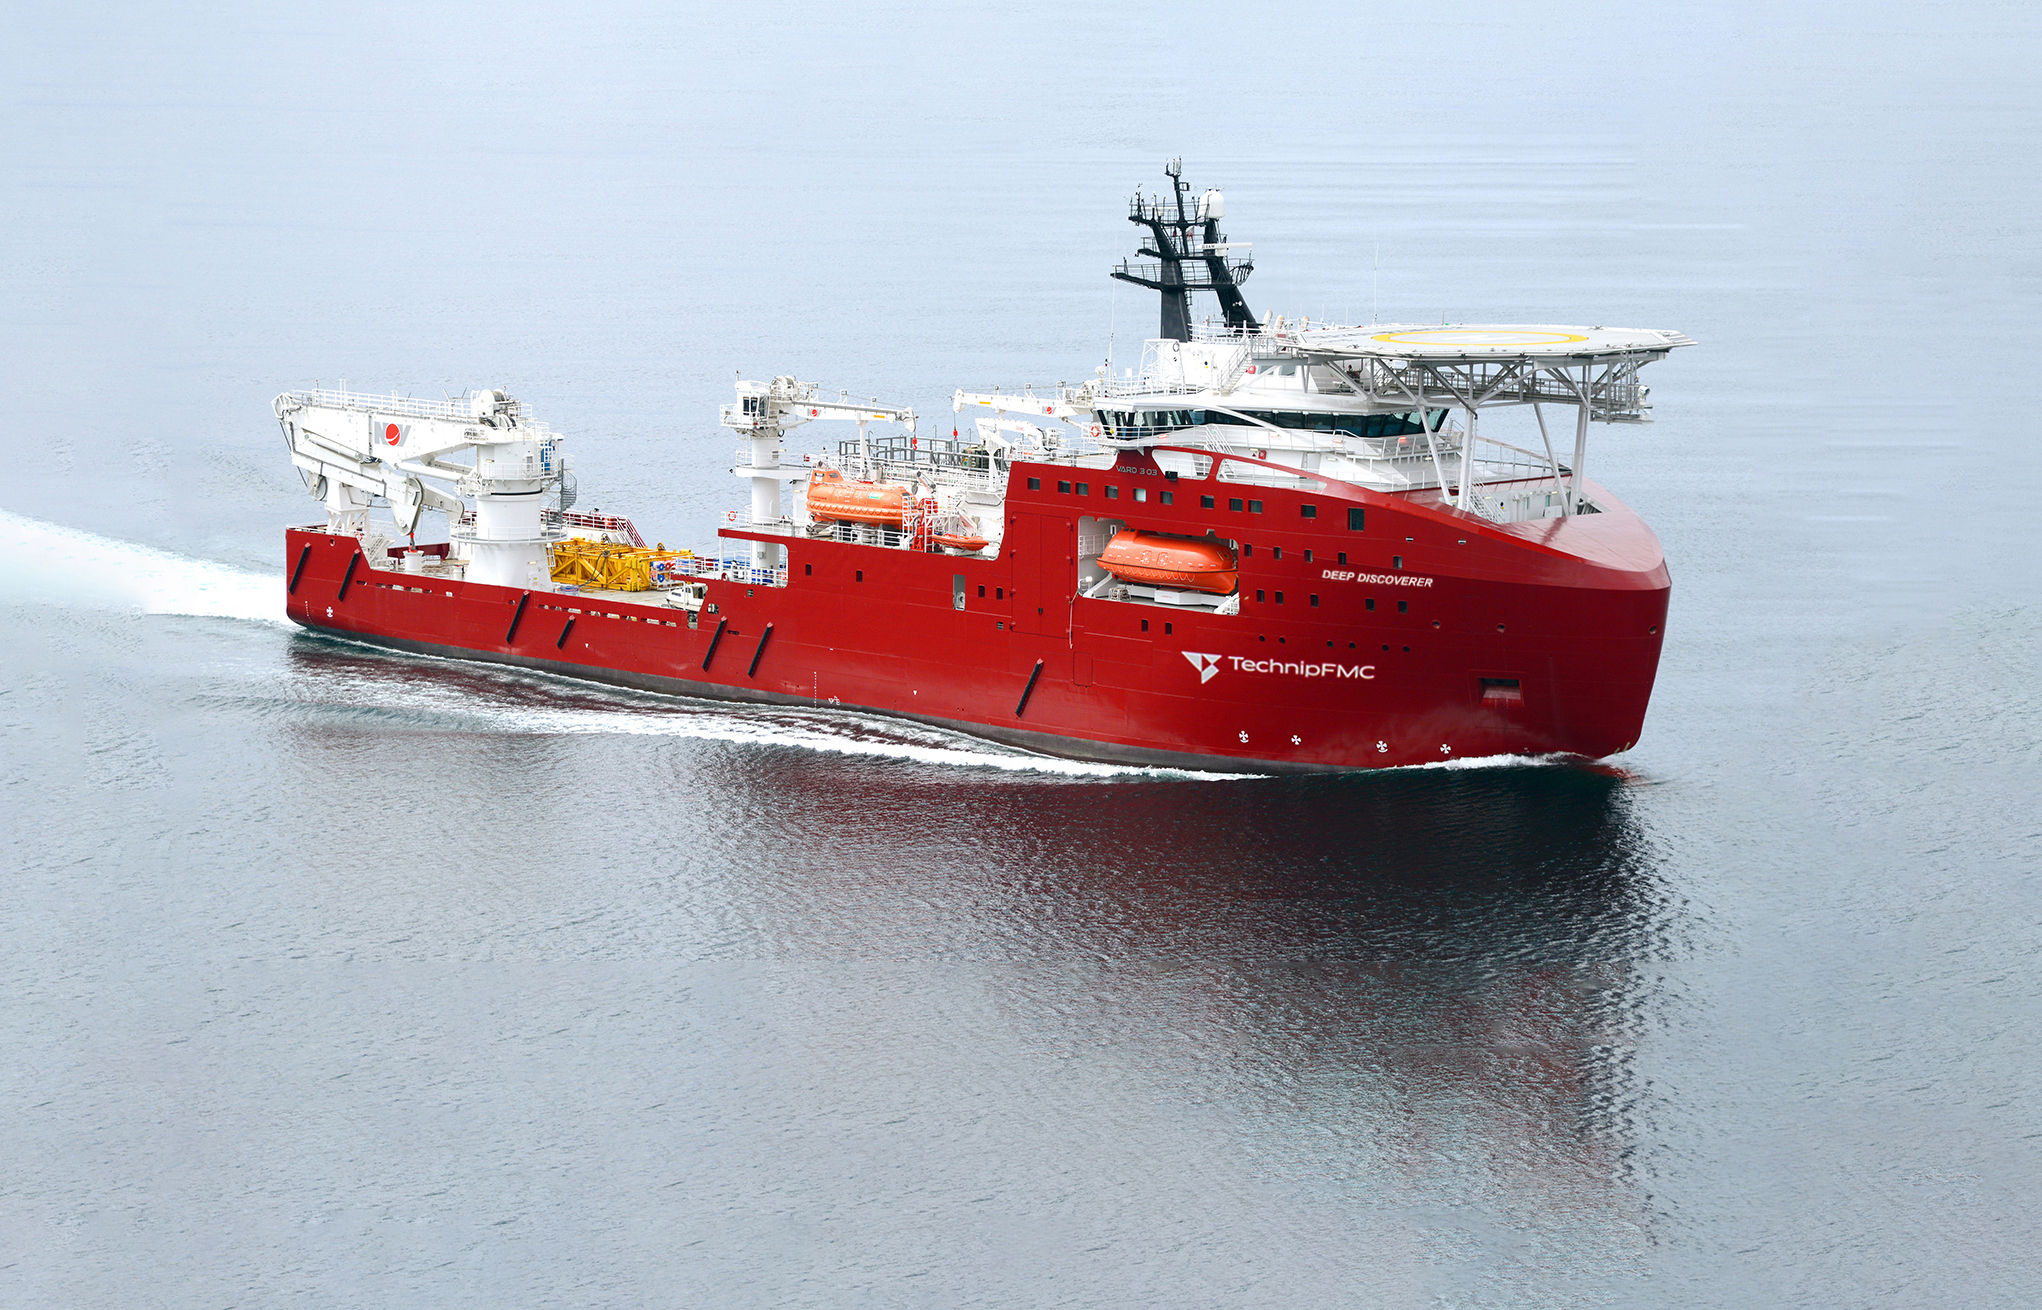 The Deep Discoverer DSV. Image: TechnipFMC